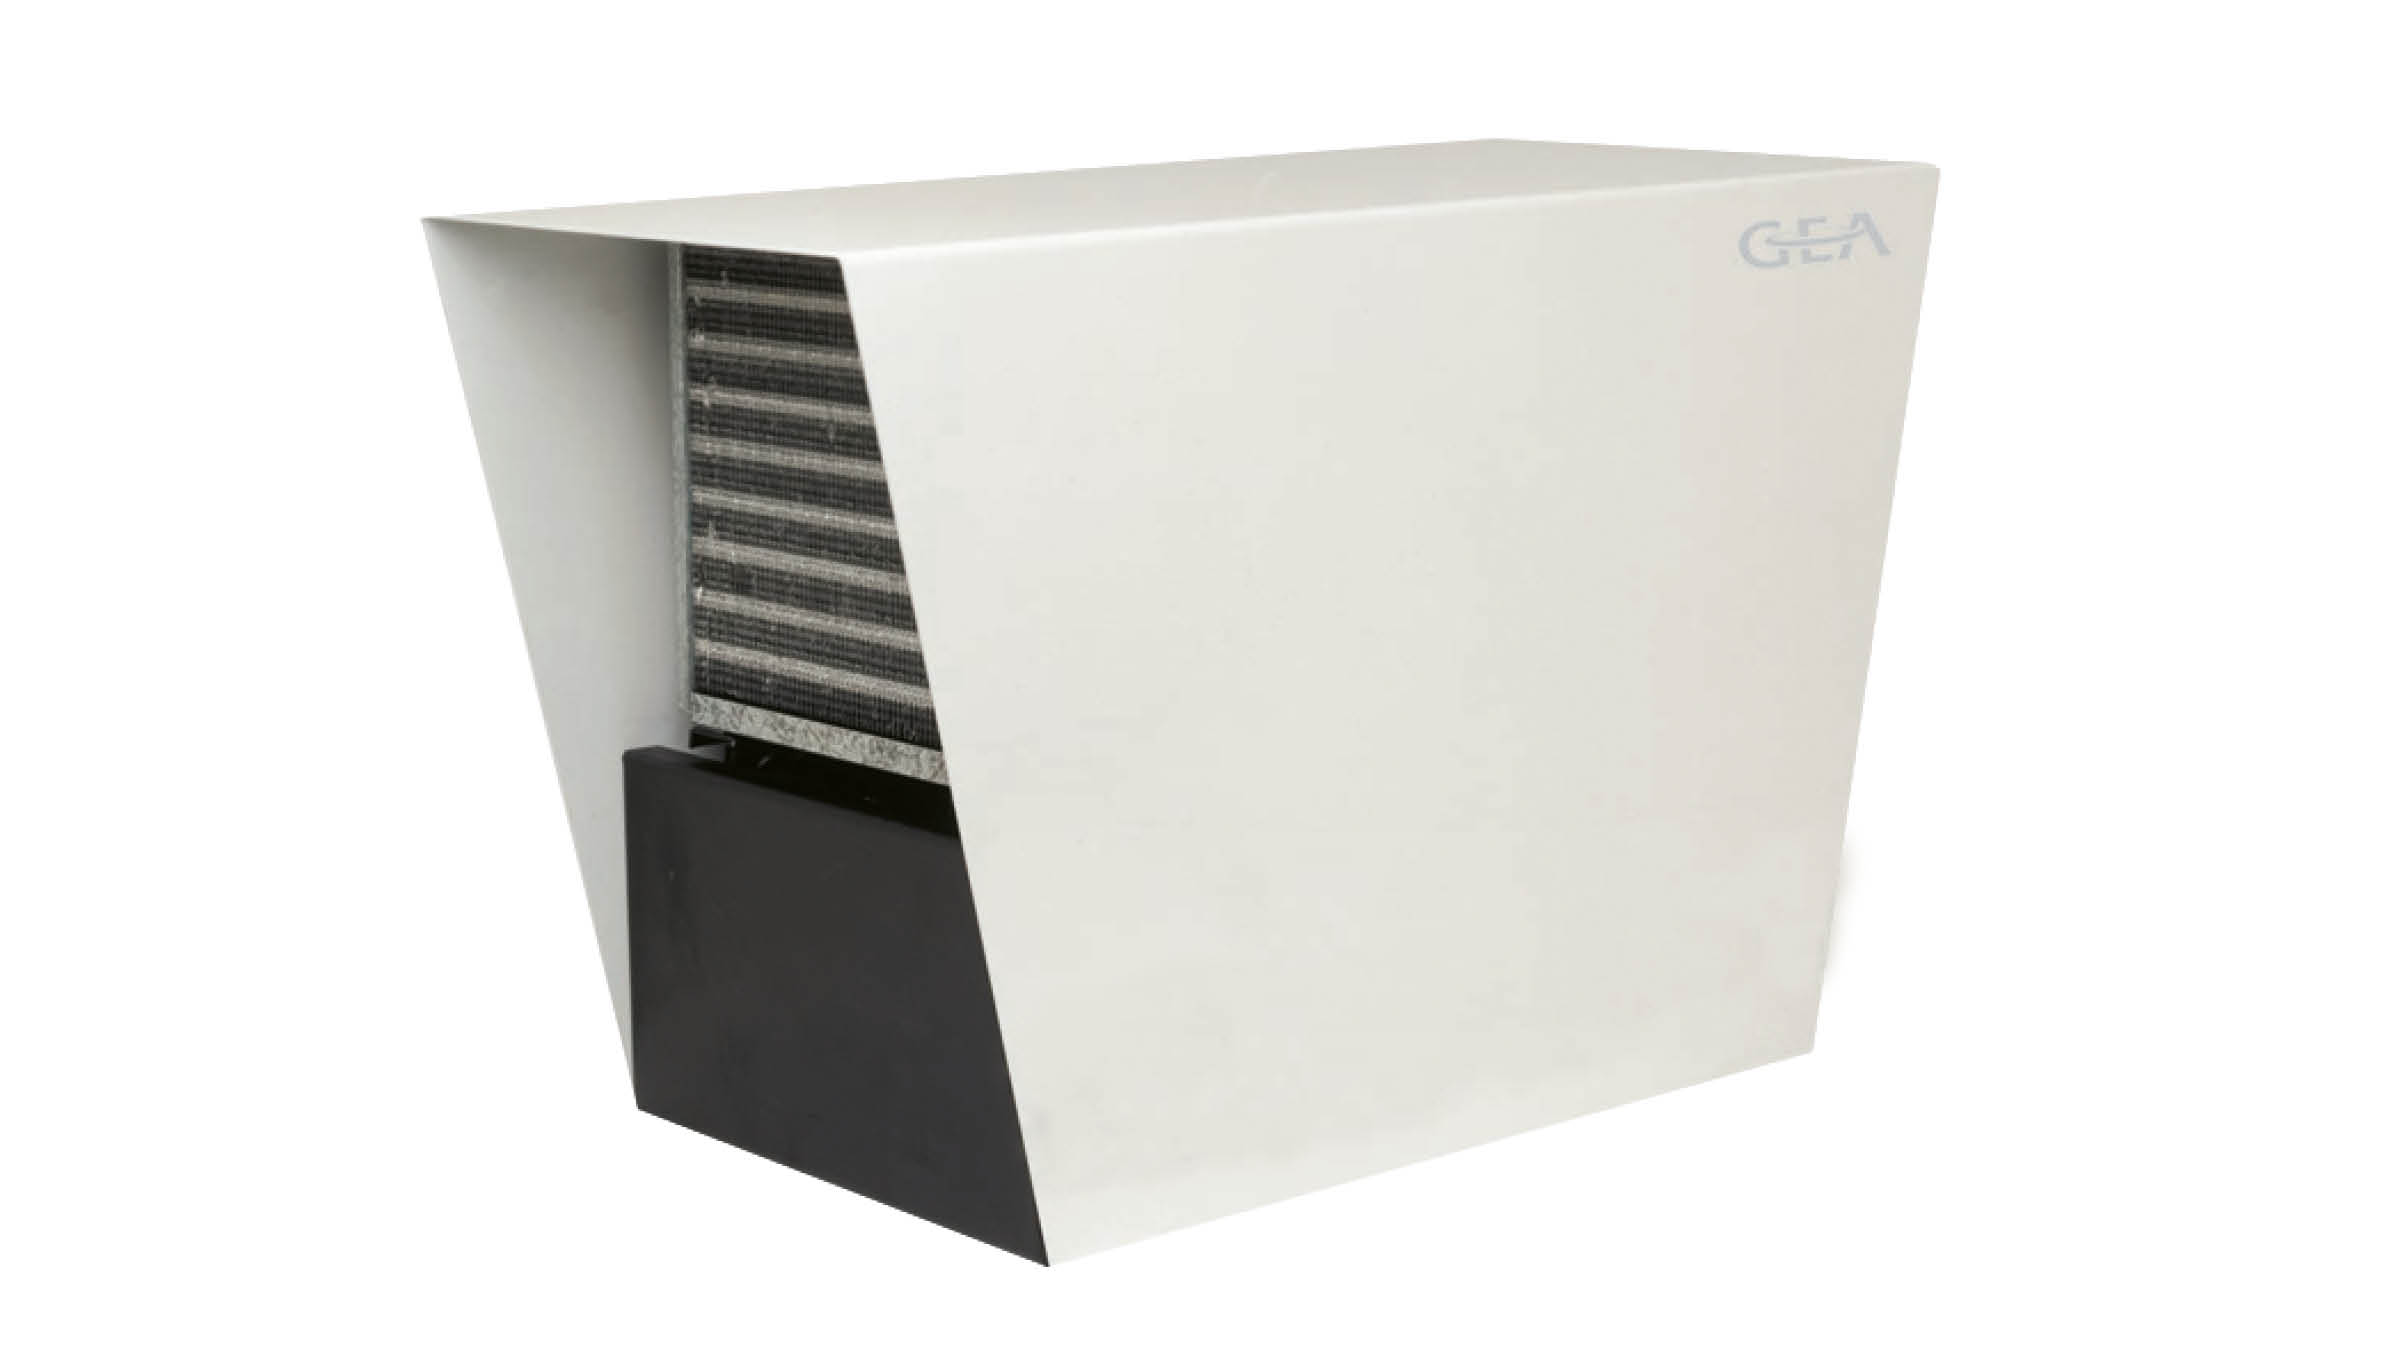 gea-purger-refrigeration